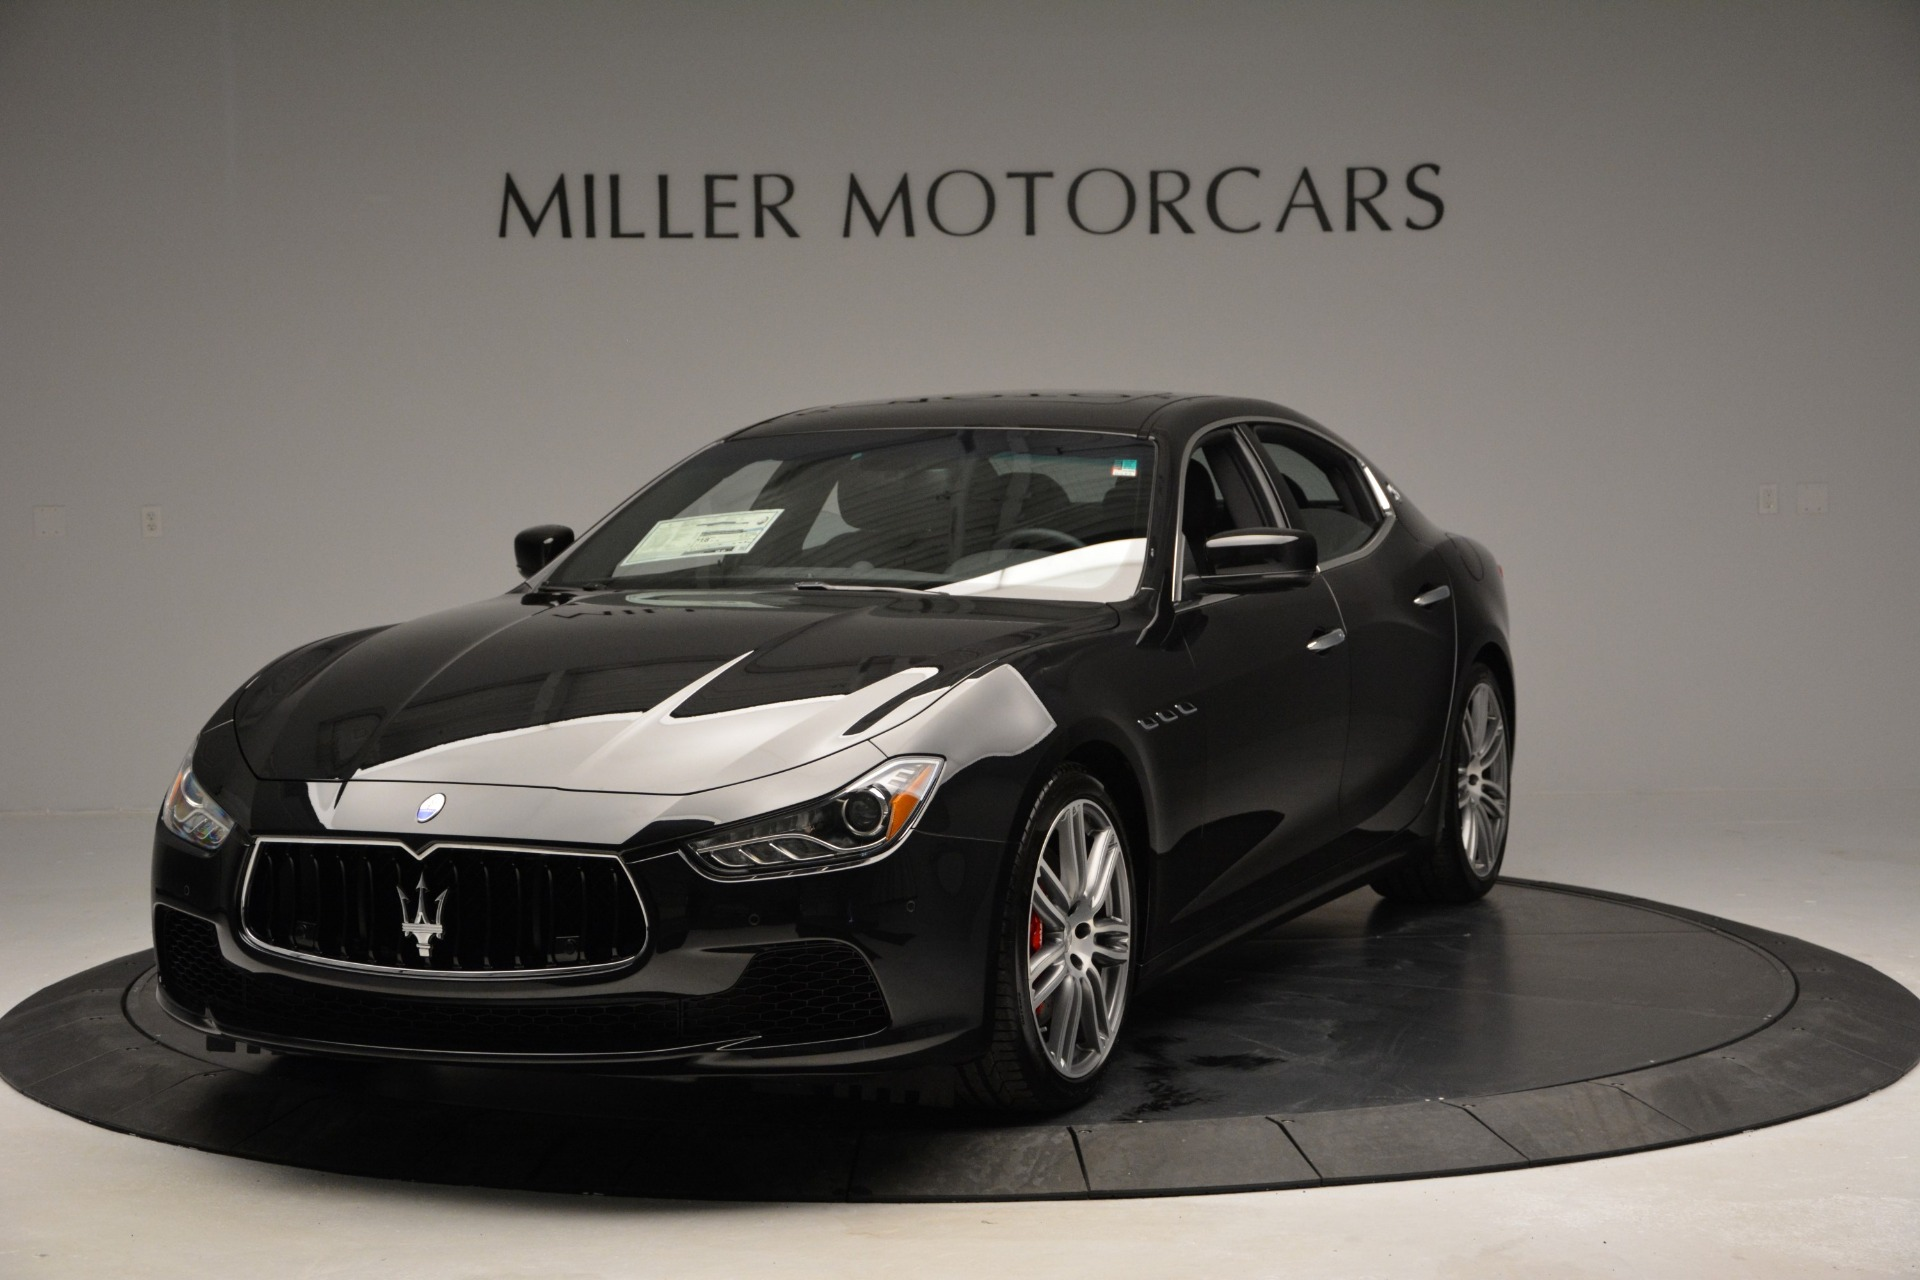 Used 2015 Maserati Ghibli S Q4 for sale Sold at McLaren Greenwich in Greenwich CT 06830 1